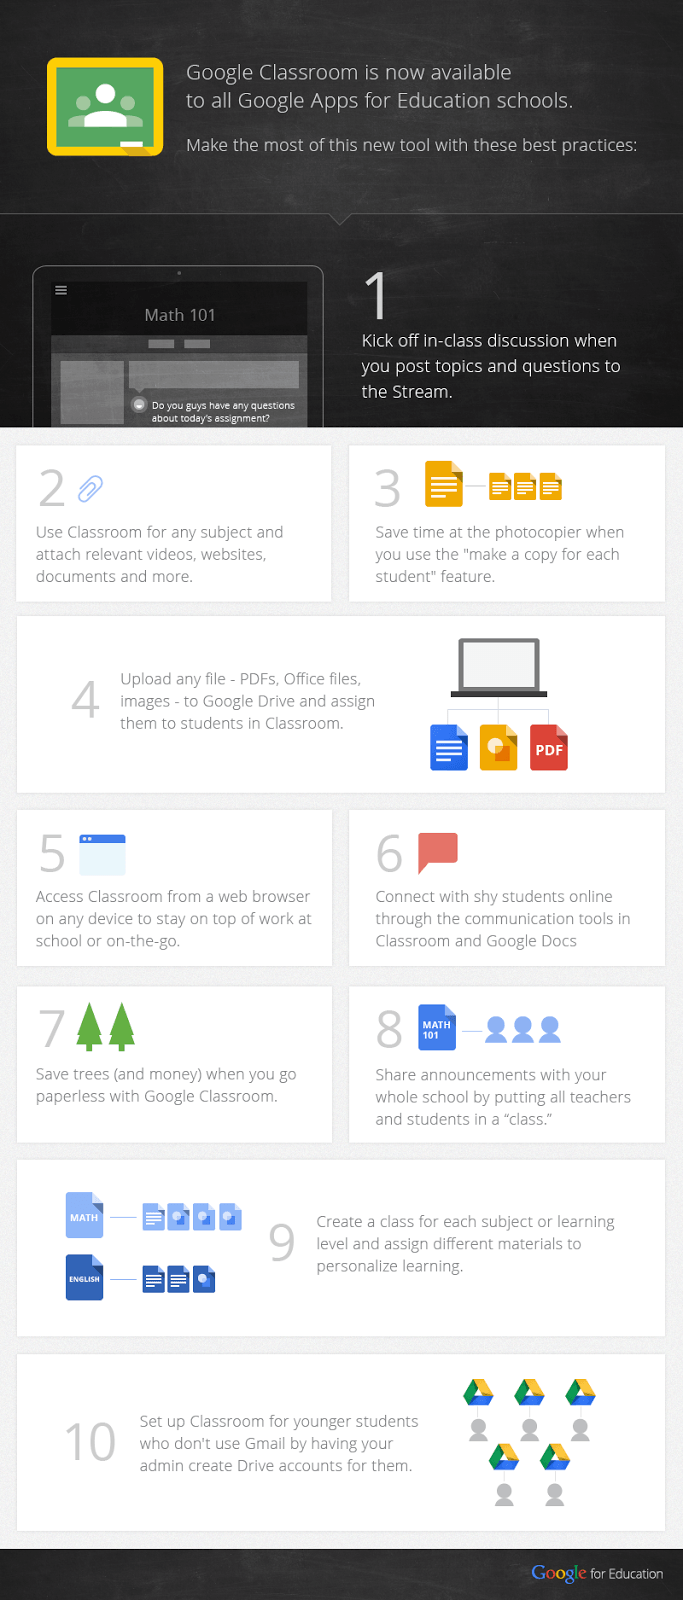 10-Tips-To-Use-Google-Classroom-Effectively-Infographic